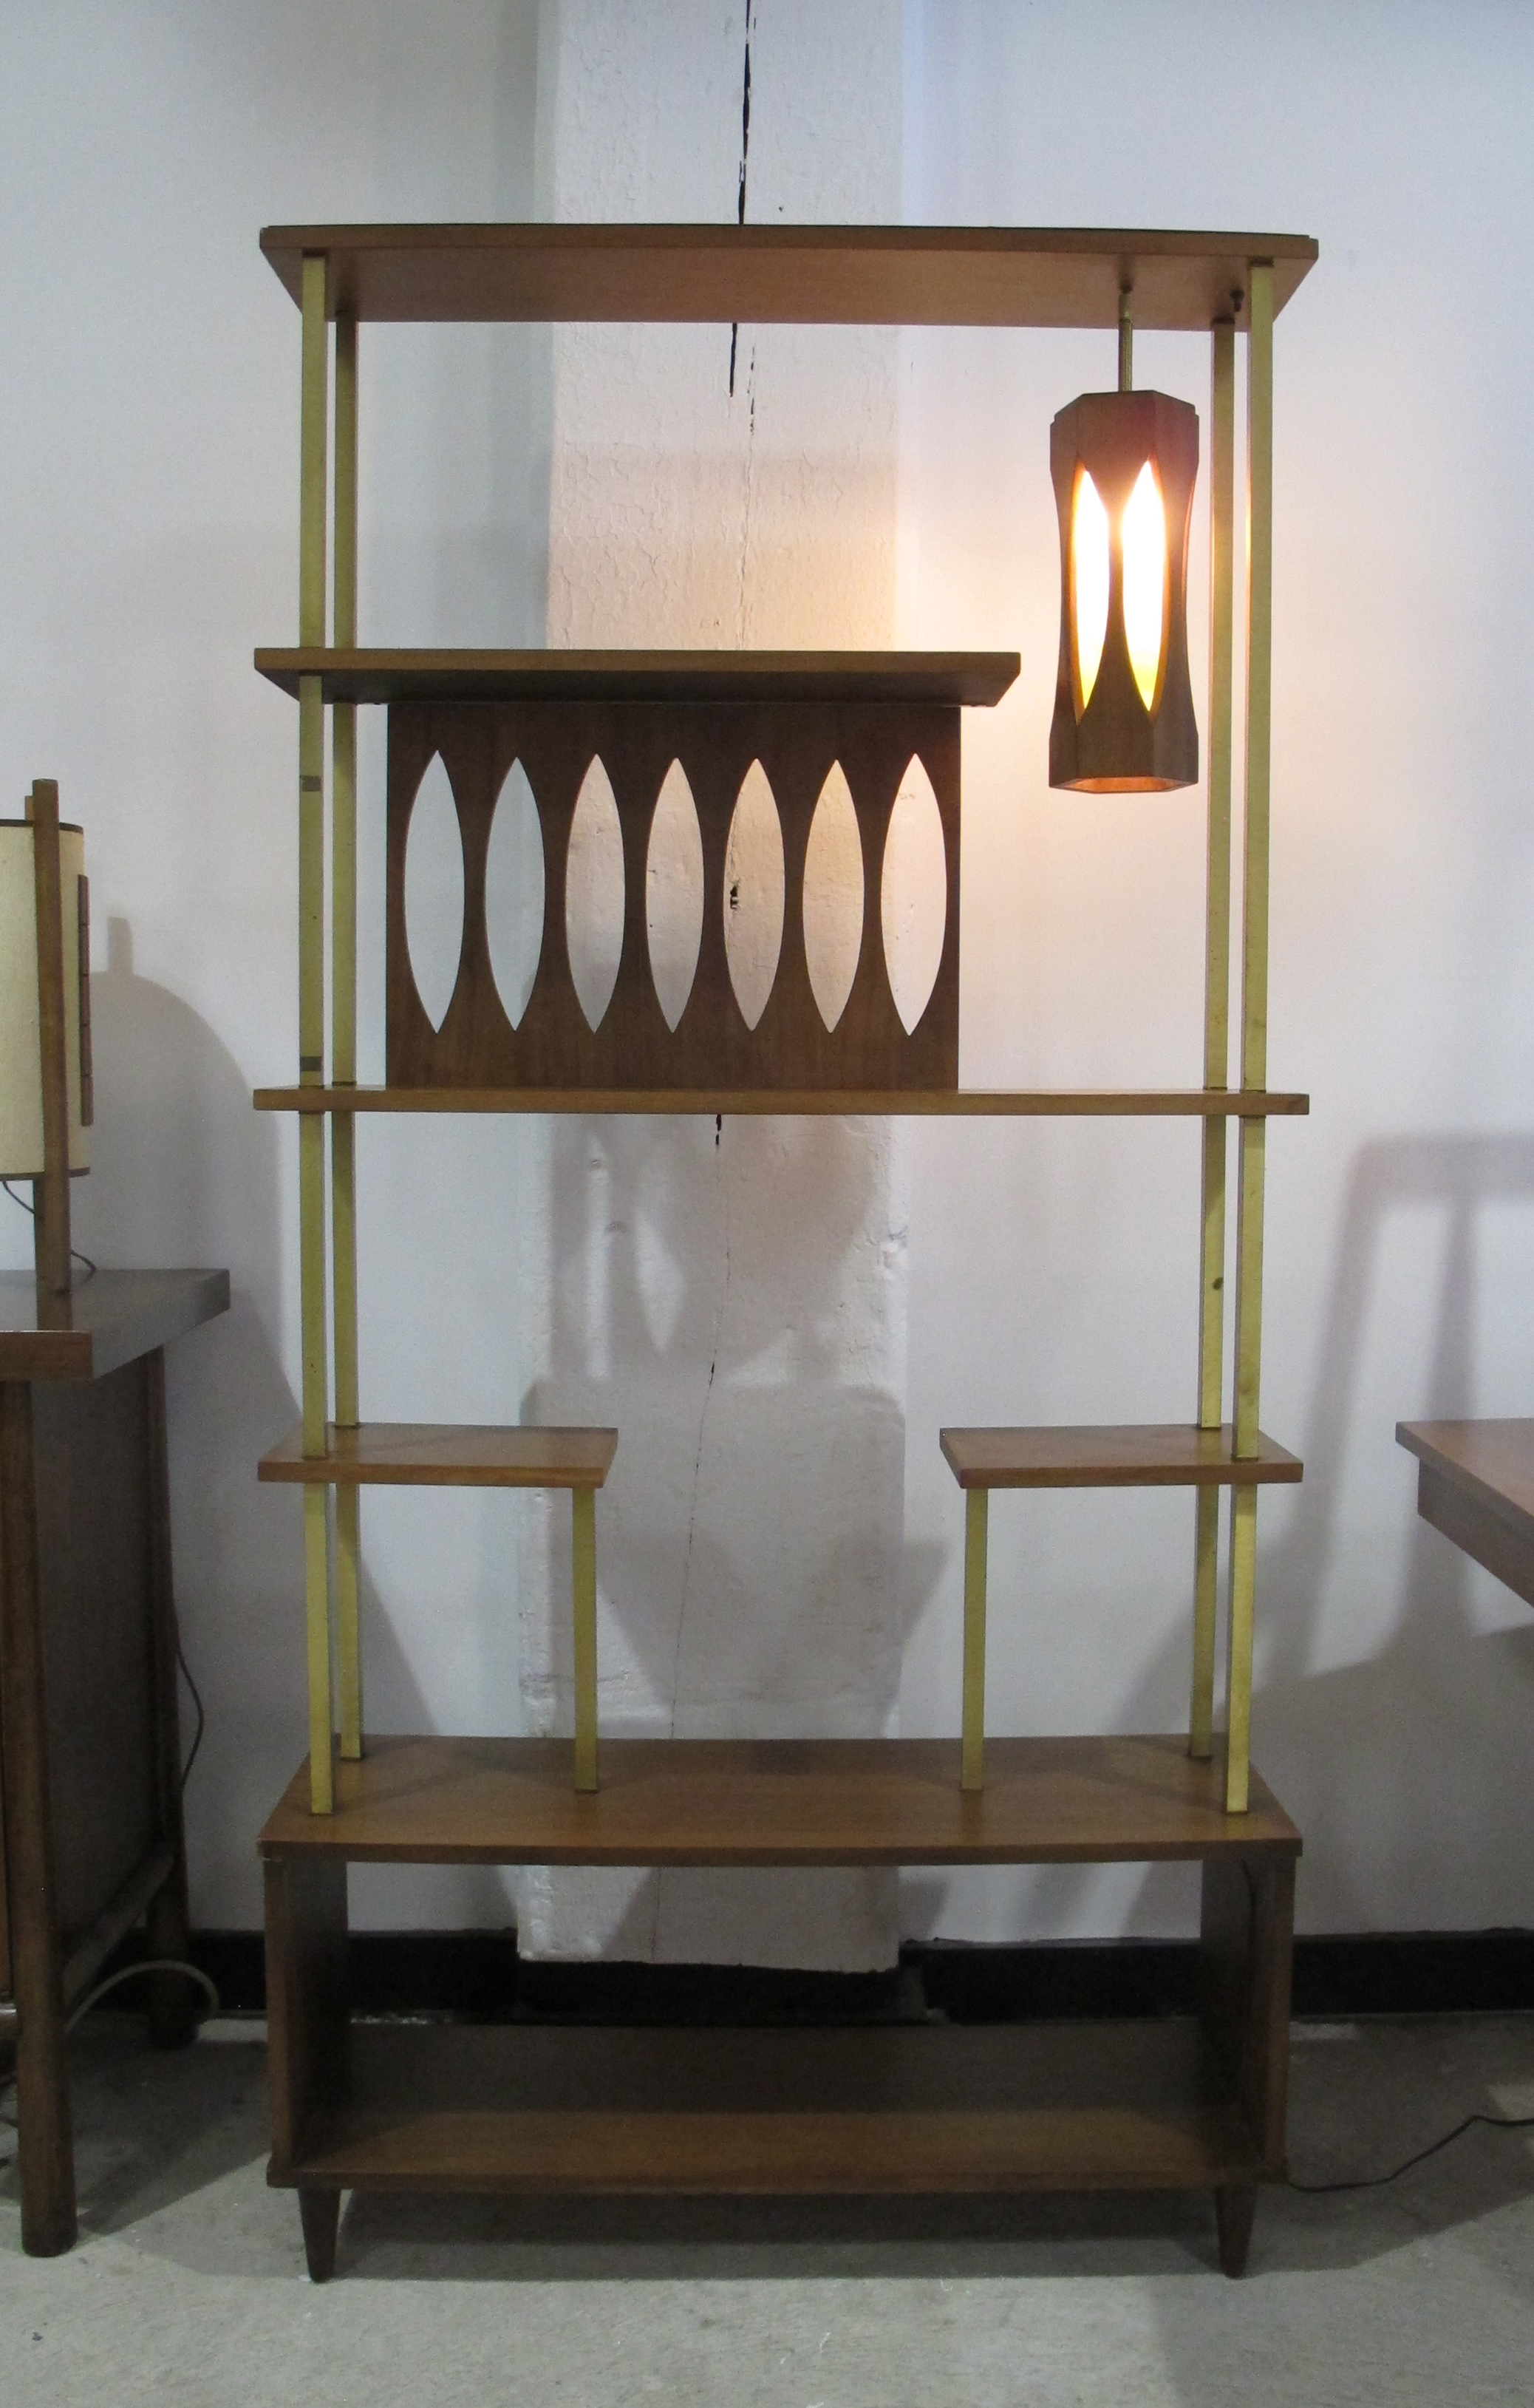 MID CENTURY MODERN WOOD & BRASS ETAGERE WITH HANGING LAMP